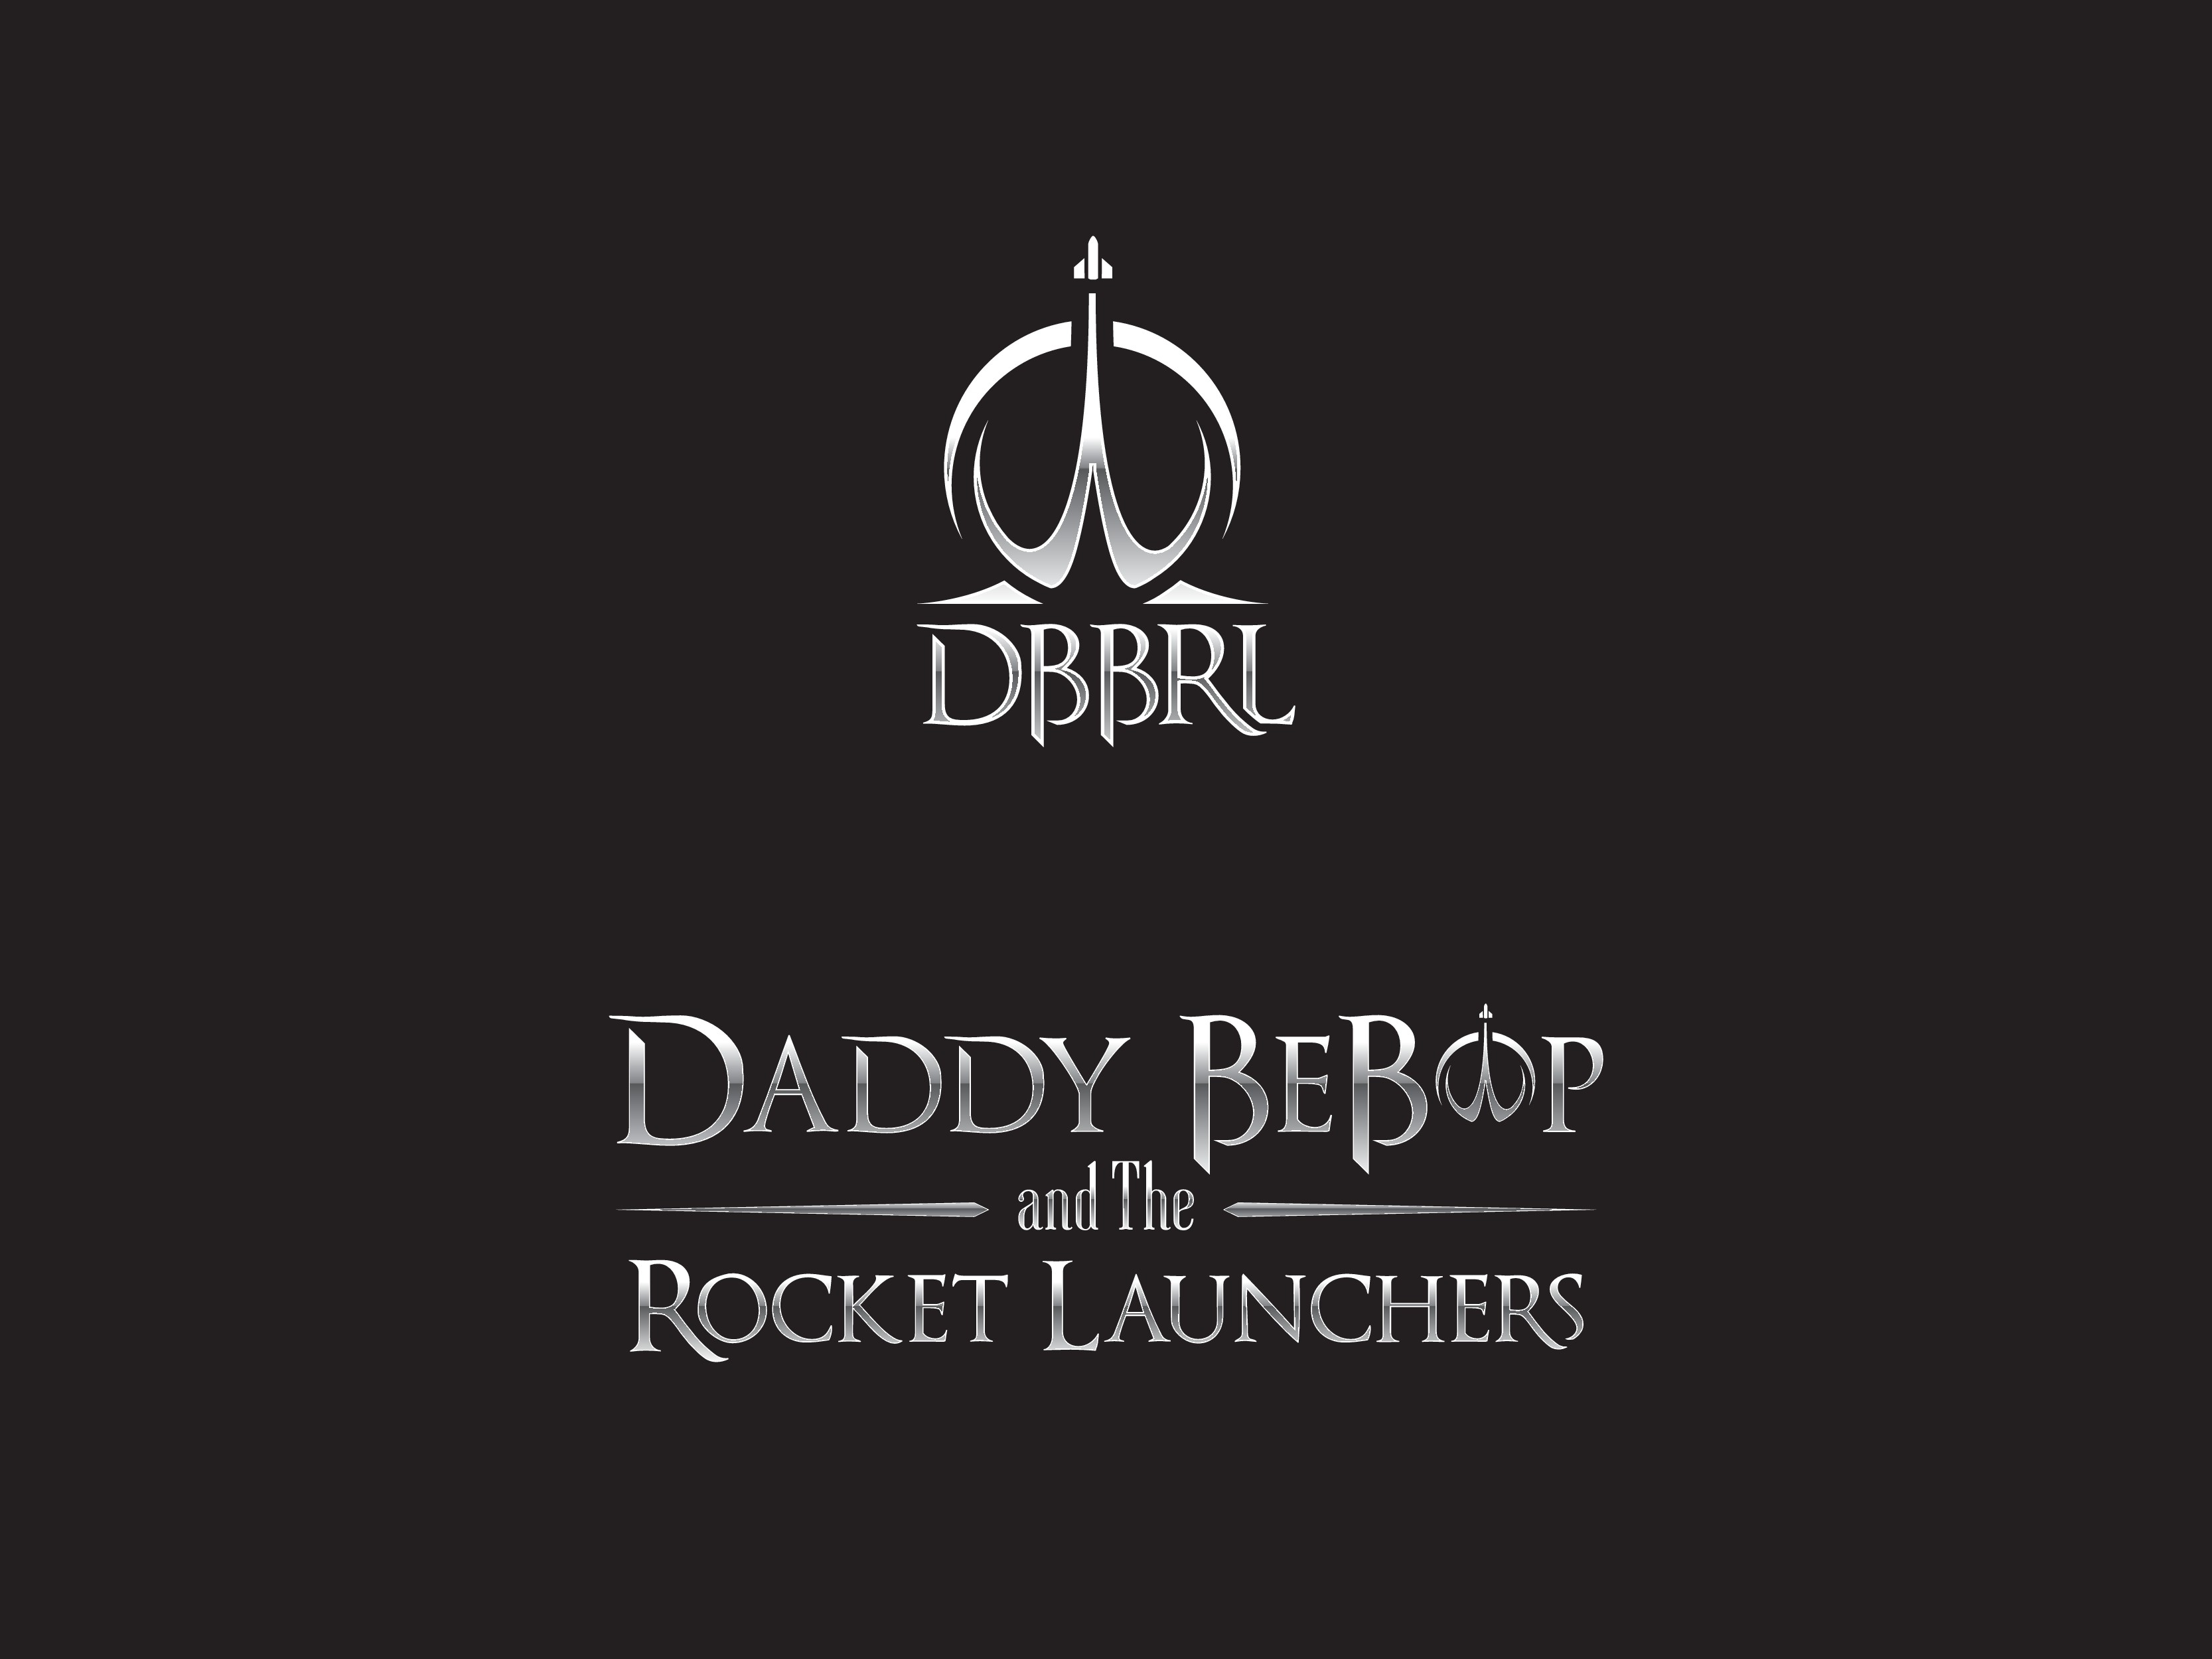 Express the sound of melodic intelligence through a visual logo. Do it for Daddy!